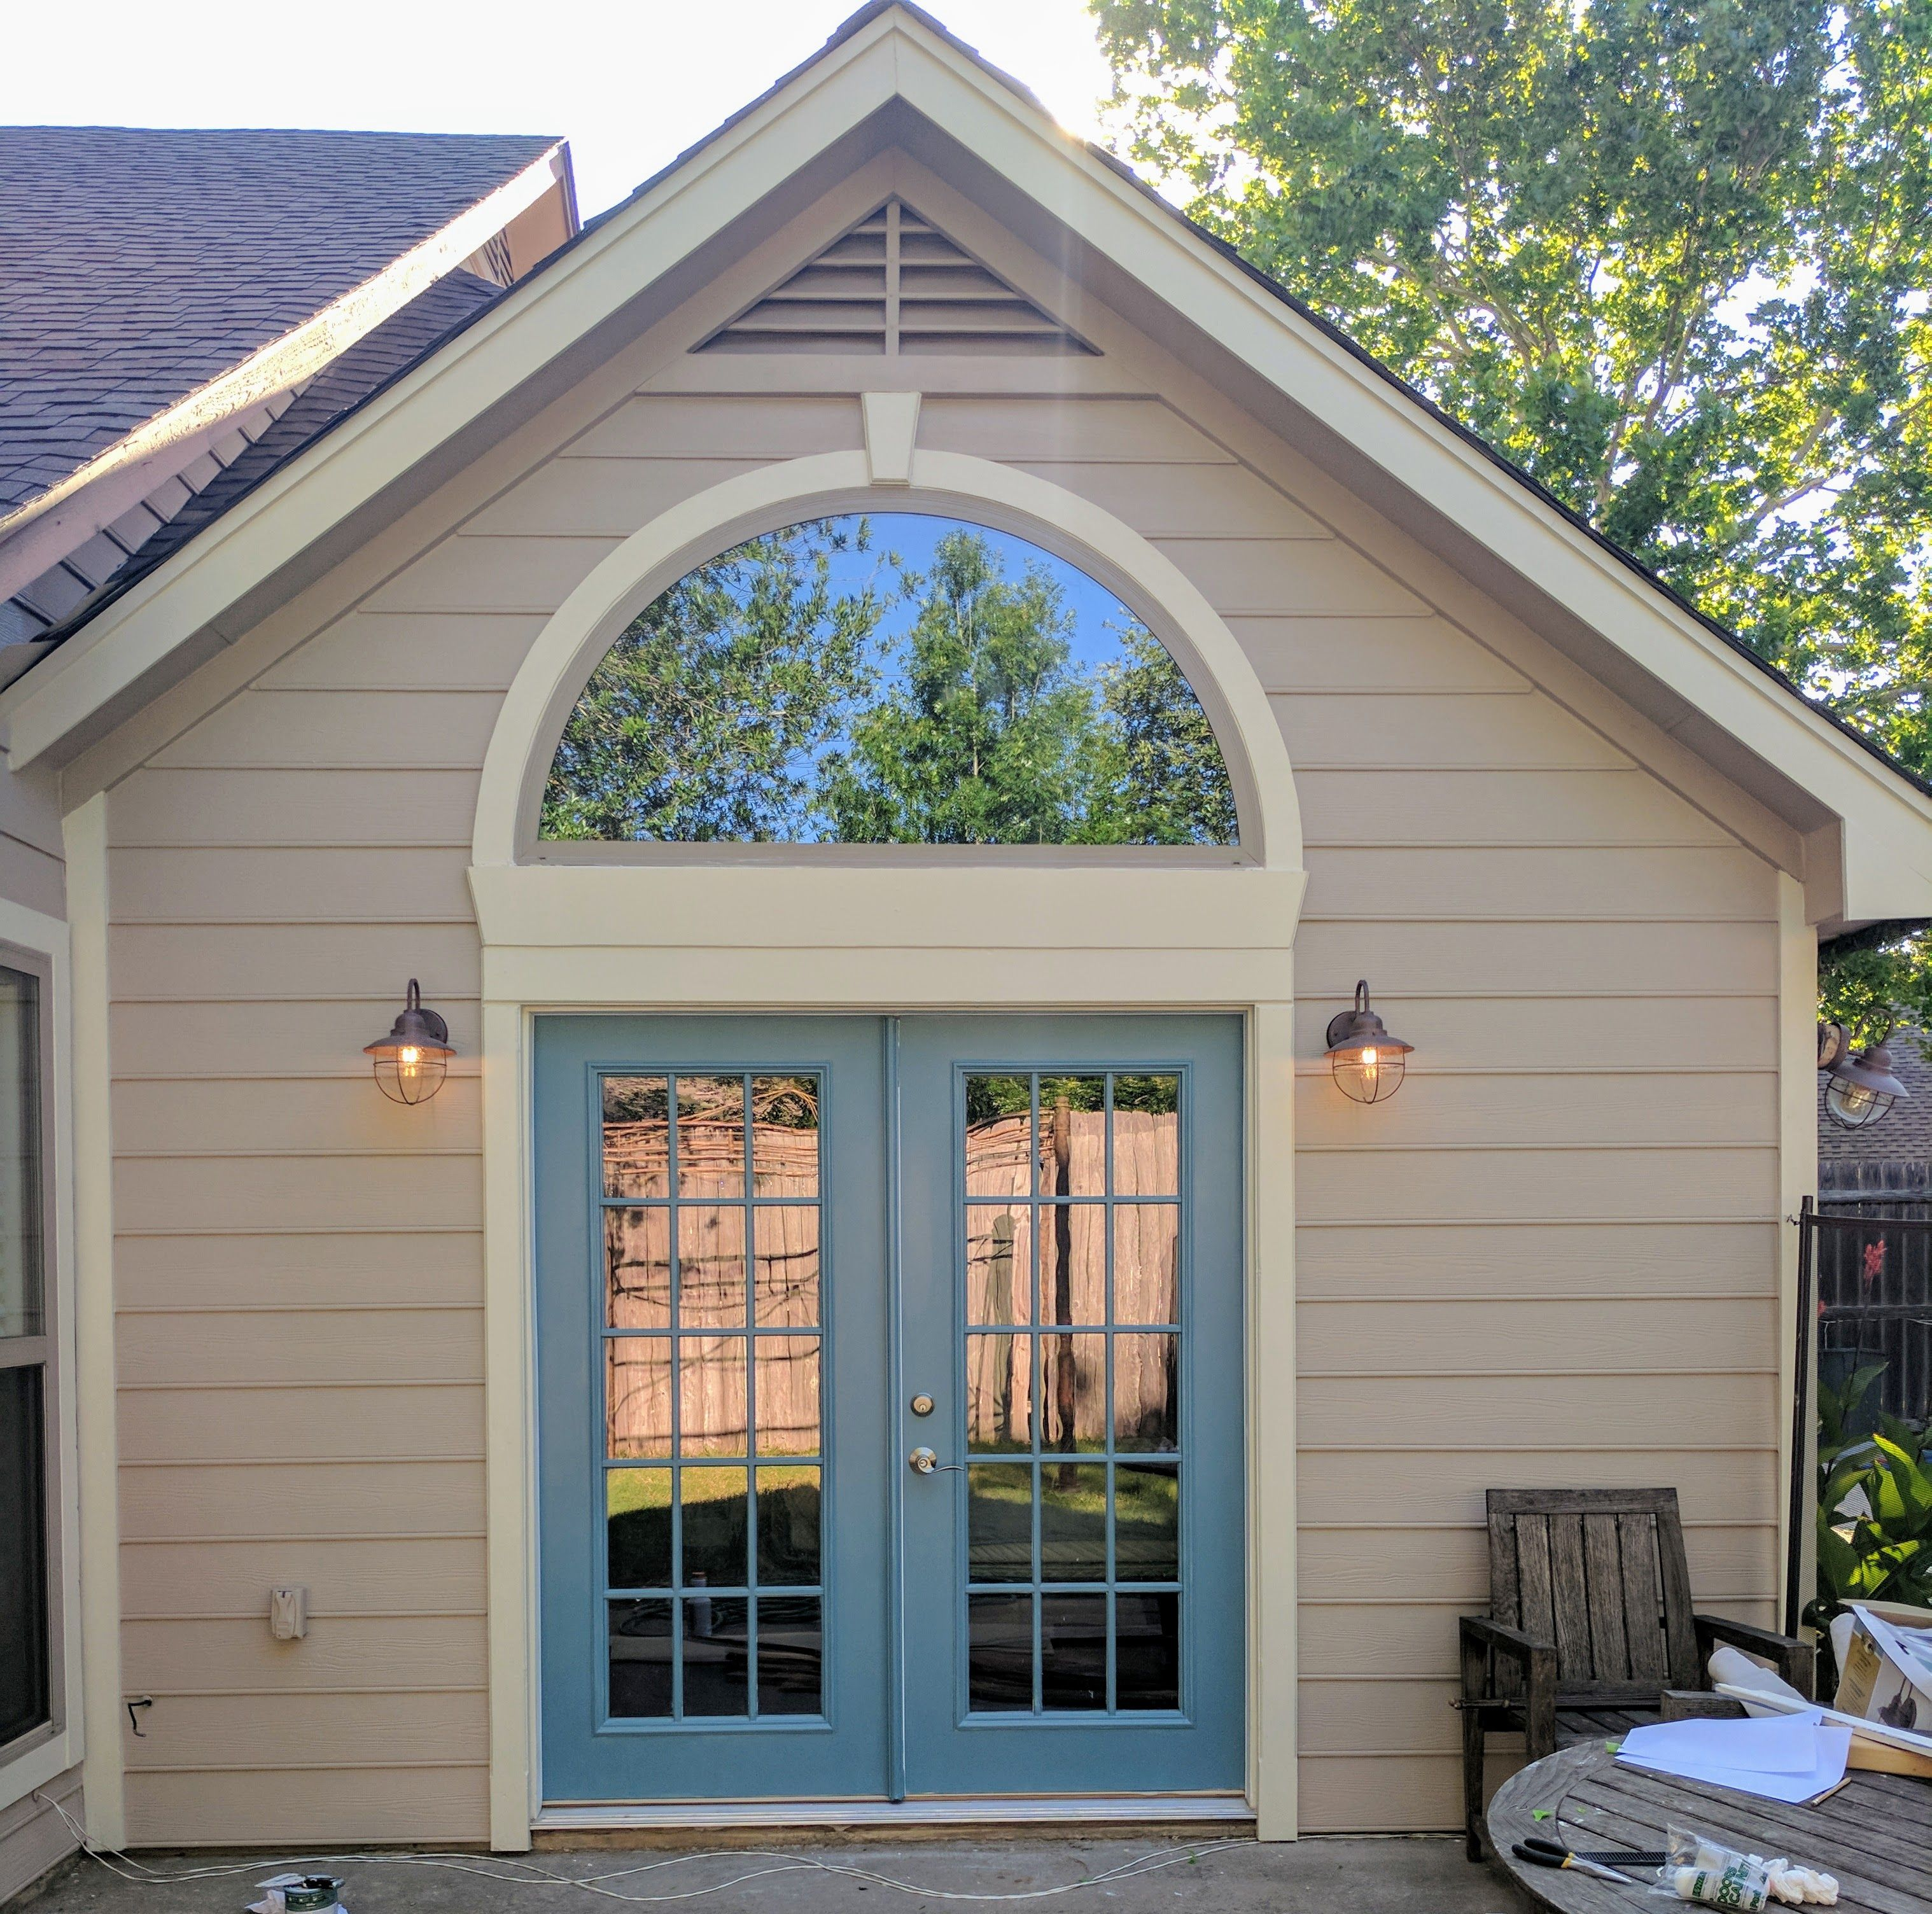 Taupe Exterior House Color Ideas: French Doors: Oarsman Blue S450-5, Siding: Mesa Taupe PPU5